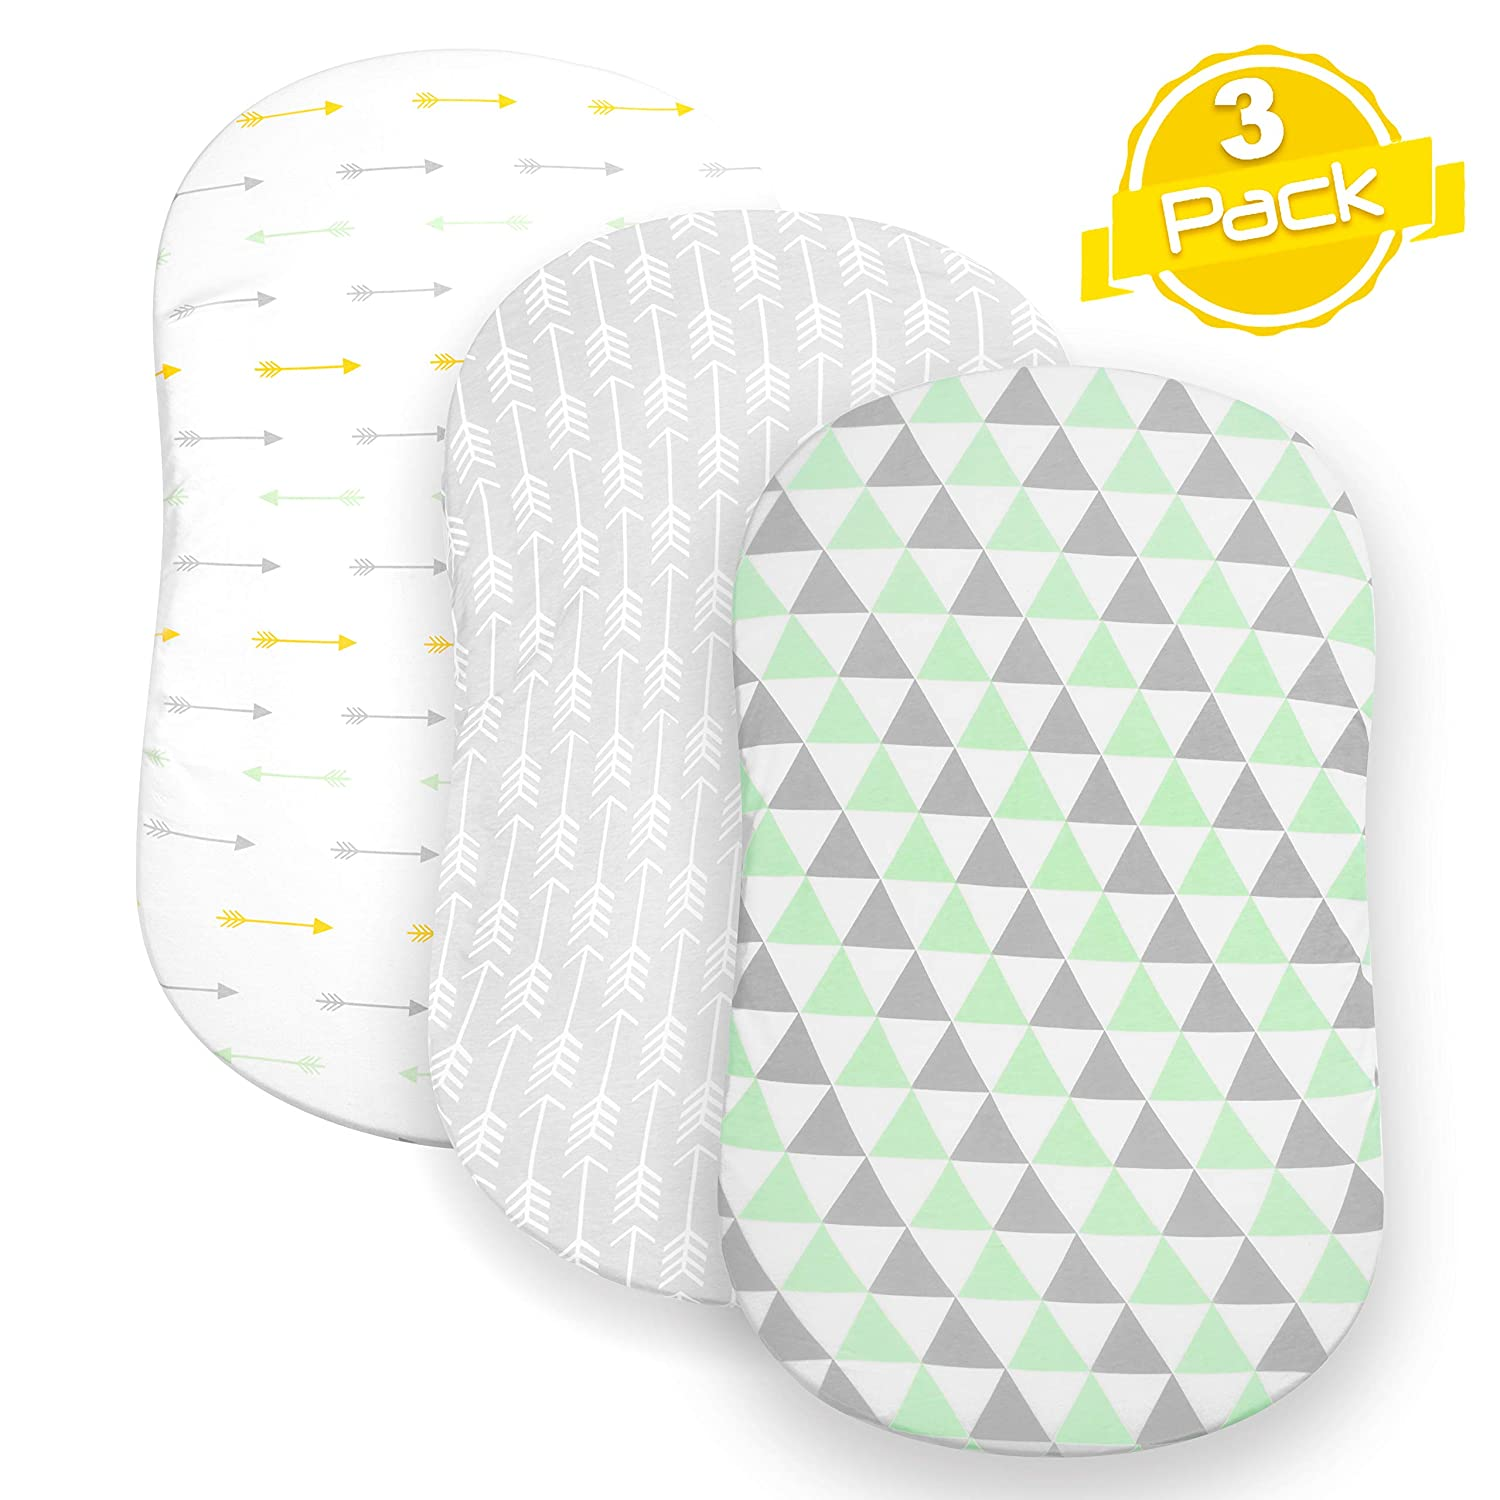 BaeBae Goods Bassinet Sheet Set | Cradle Fitted Sheets for Bassinet Mattress/Pads | Super Soft Jersey Knit Cotton | 3 Pack | 150 GSM | Arrows Collection